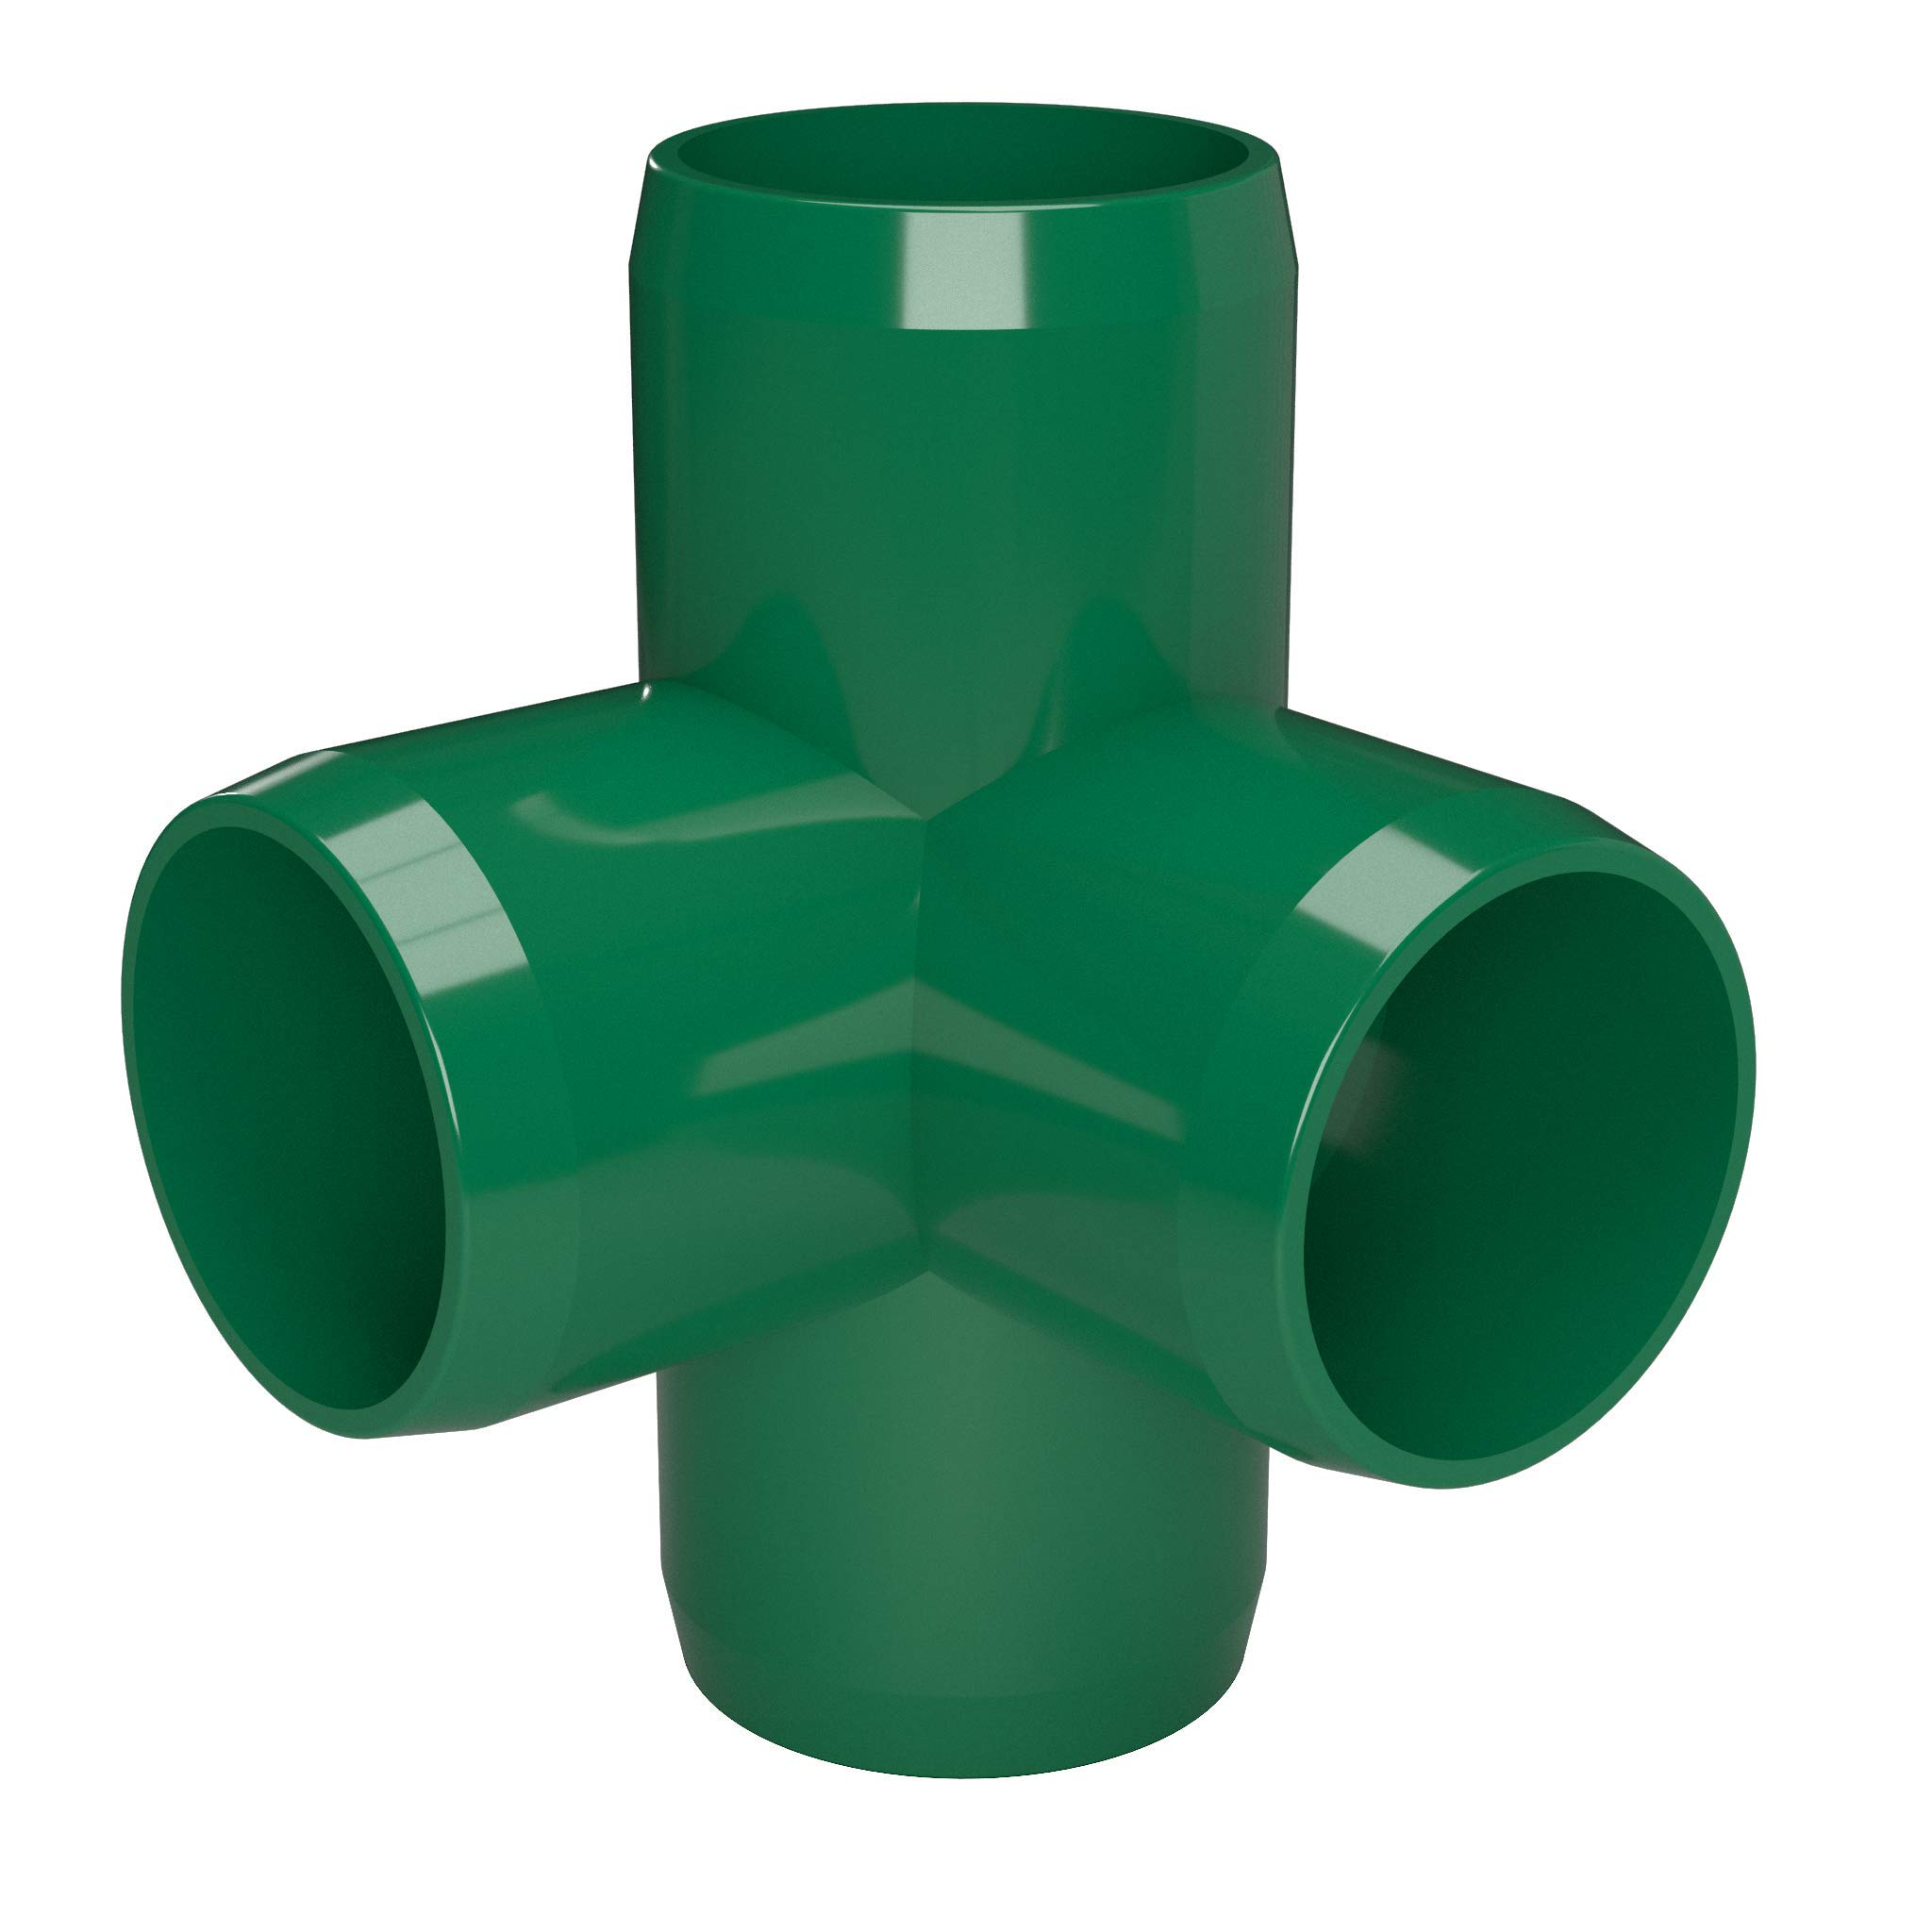 FORMUFIT F1144WT-GR-4 4-Way Tee PVC Fitting, Furniture Grade, 1-1/4'' Size, Green (Pack of 4) by FORMUFIT (Image #3)